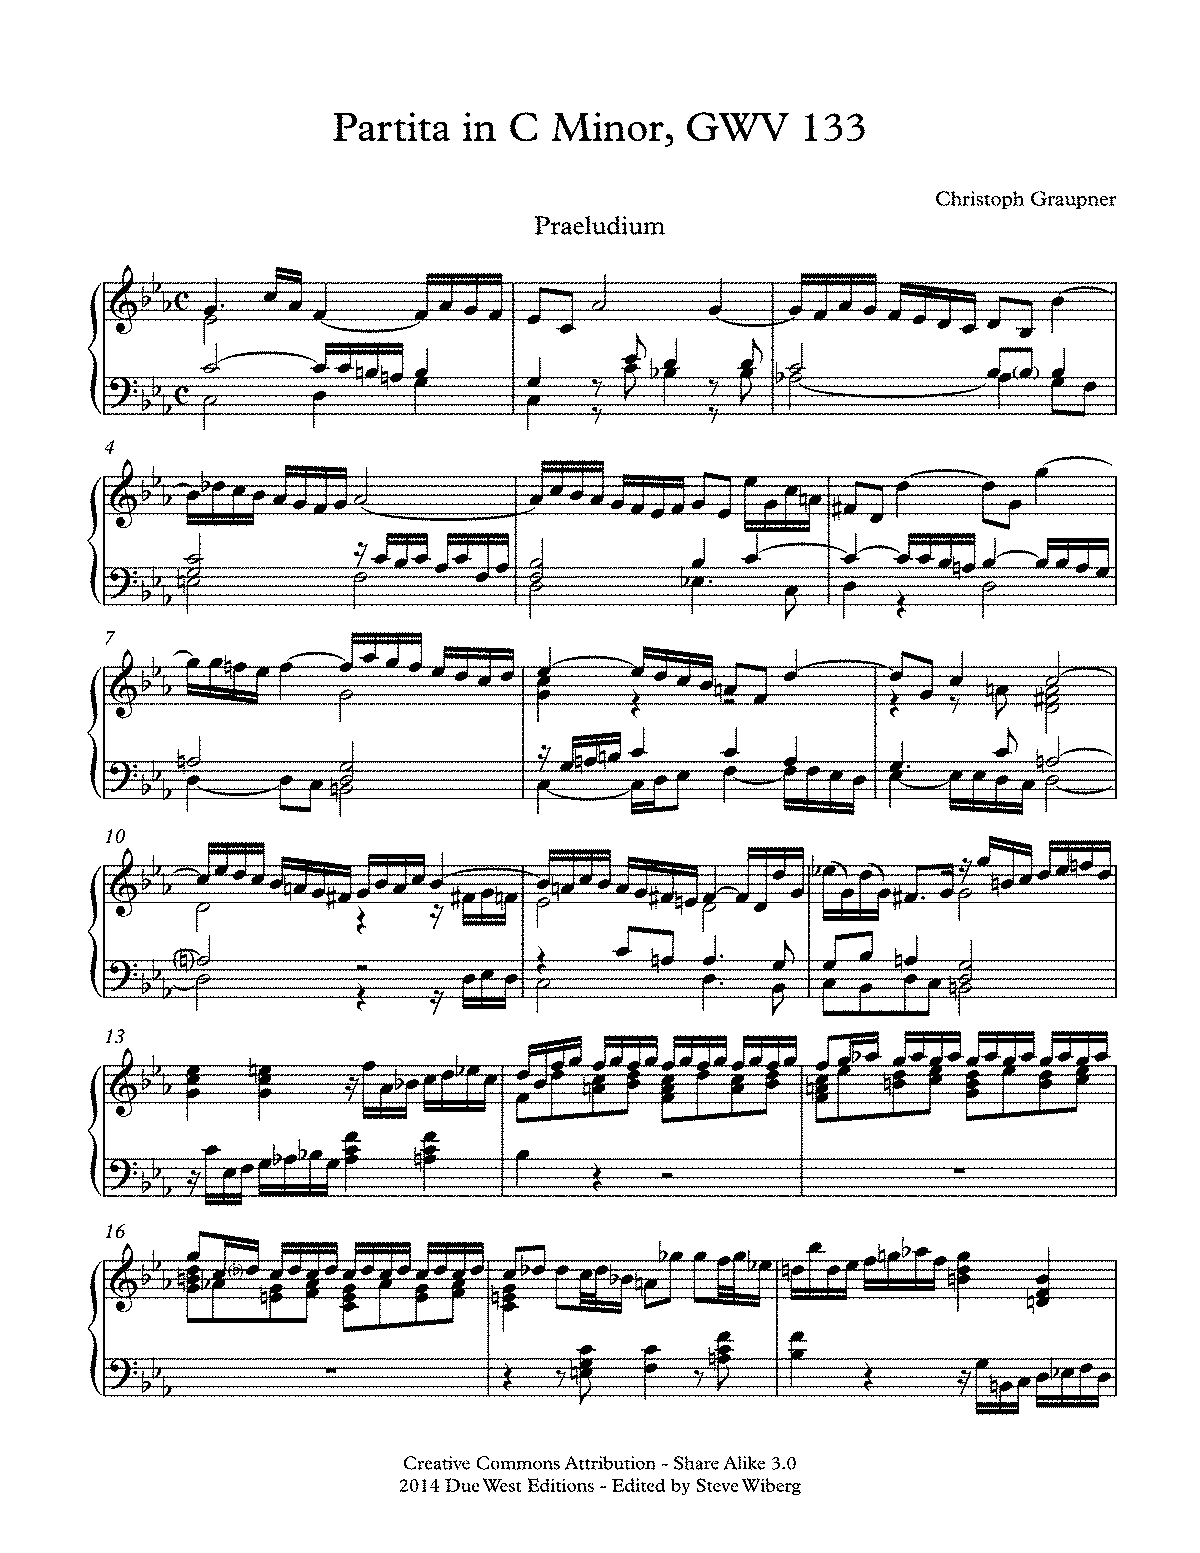 PMLP178255-Graupner - Partita in C Minor, GWV 133 - Full Score.pdf